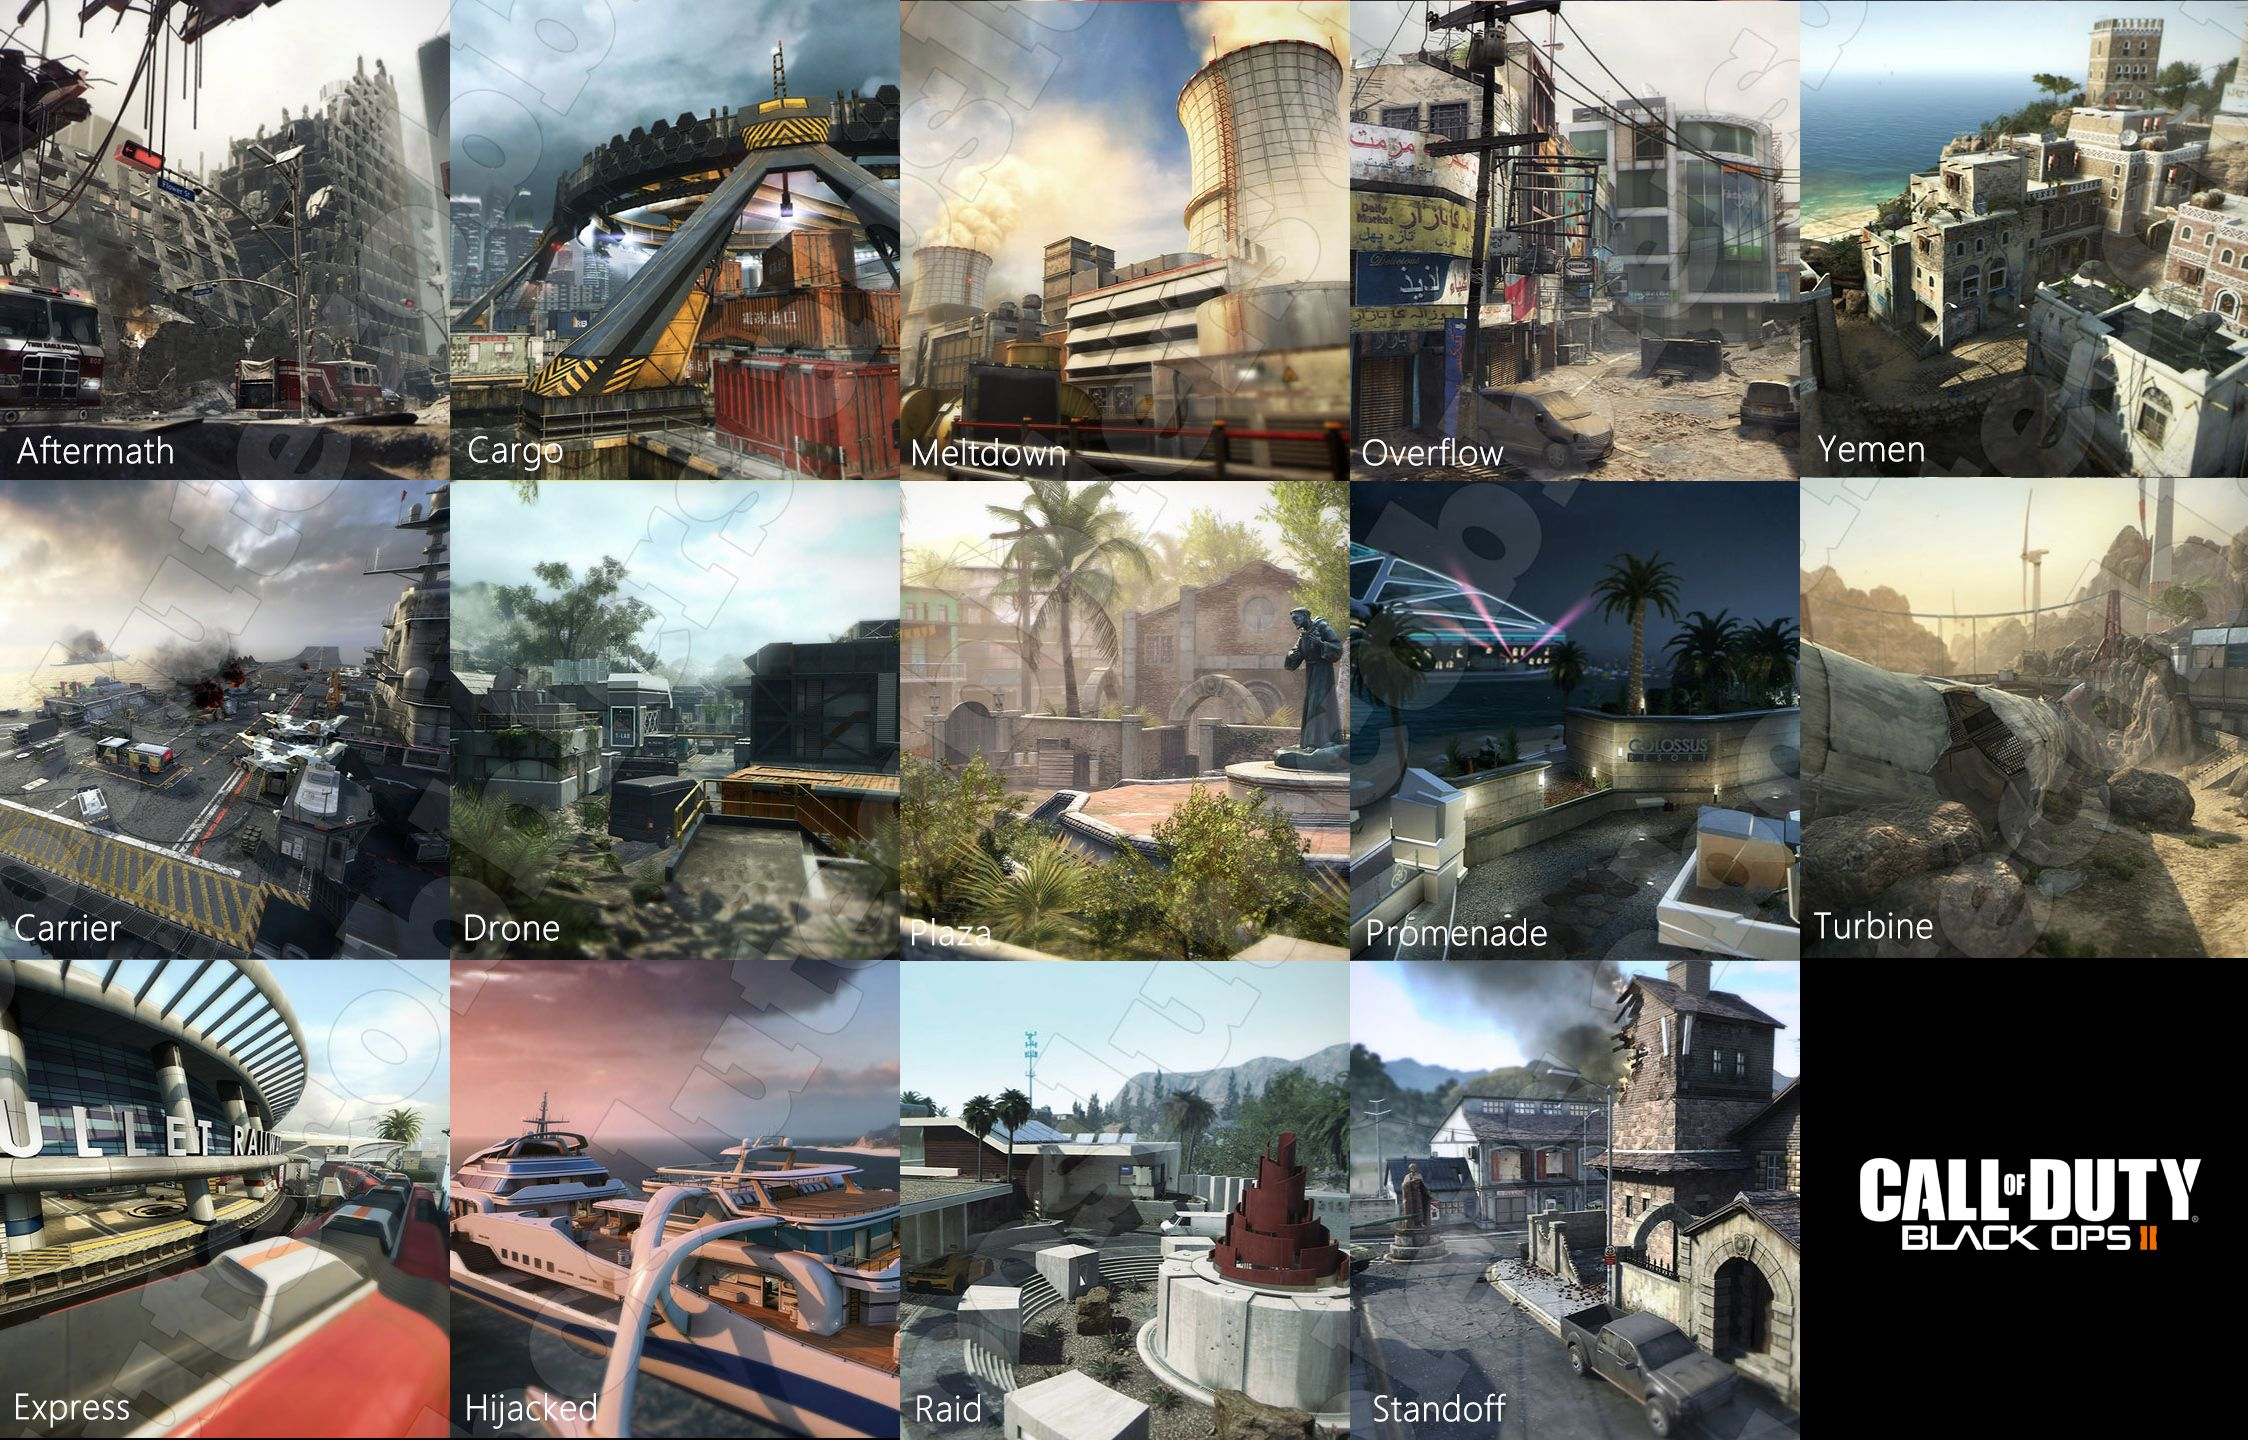 Cod Black Ops Maps Elite Update Has Now Also Revealed